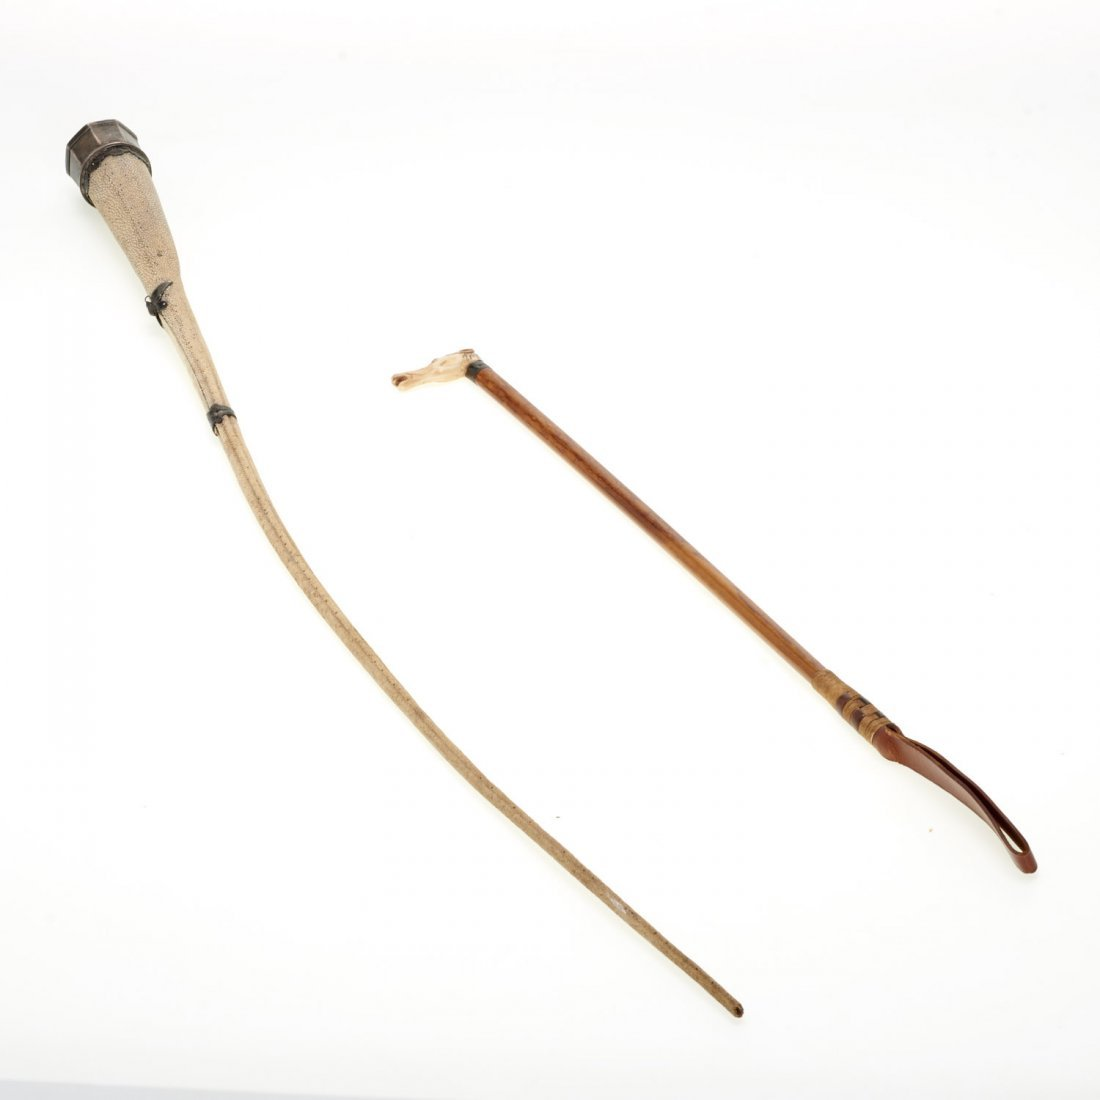 (2) Antique shagreen and hardwood riding crops